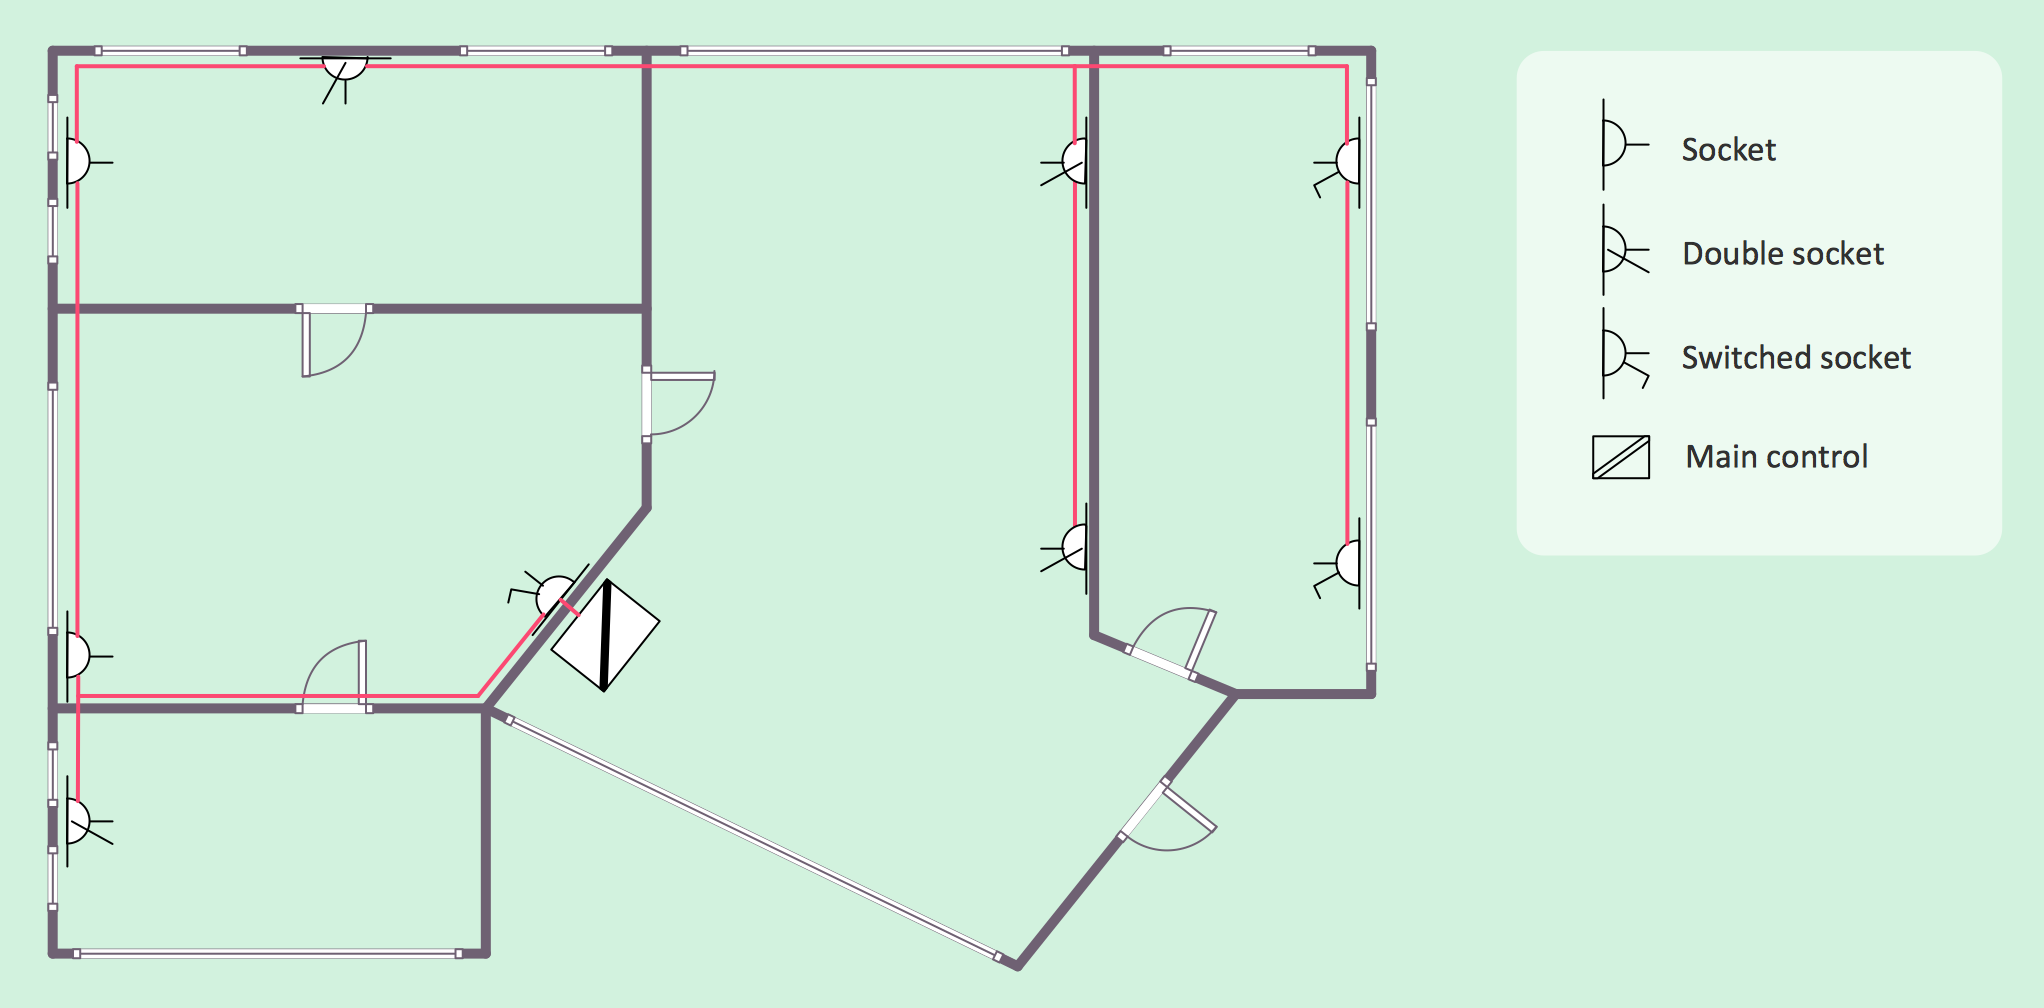 House Electrical Plan Software Diagram Help Requested For Changing Double Switch To Two Singles